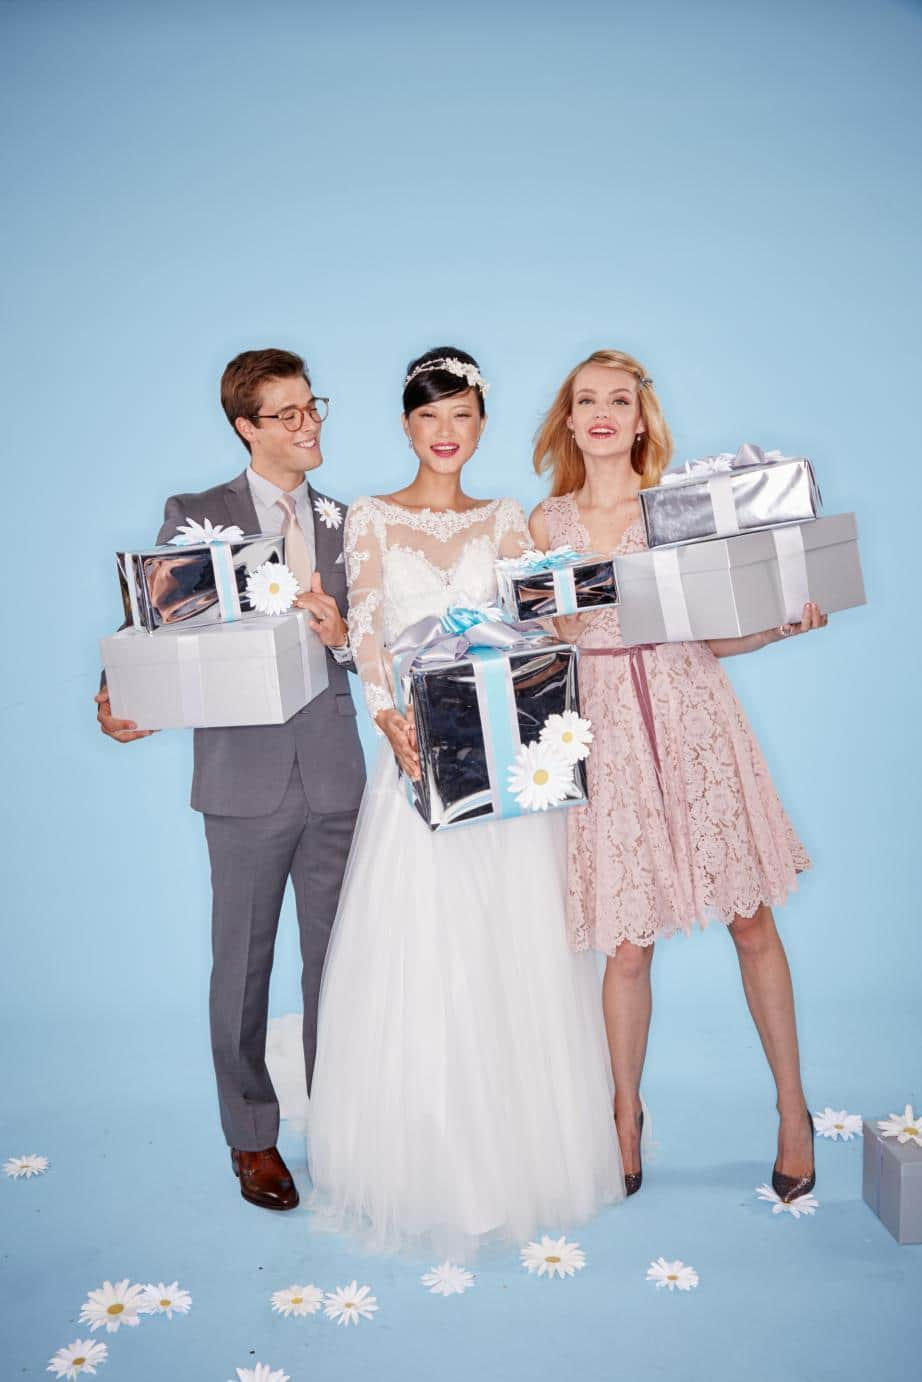 Give A Gift Get a Gift - Macy's Wedding Registry